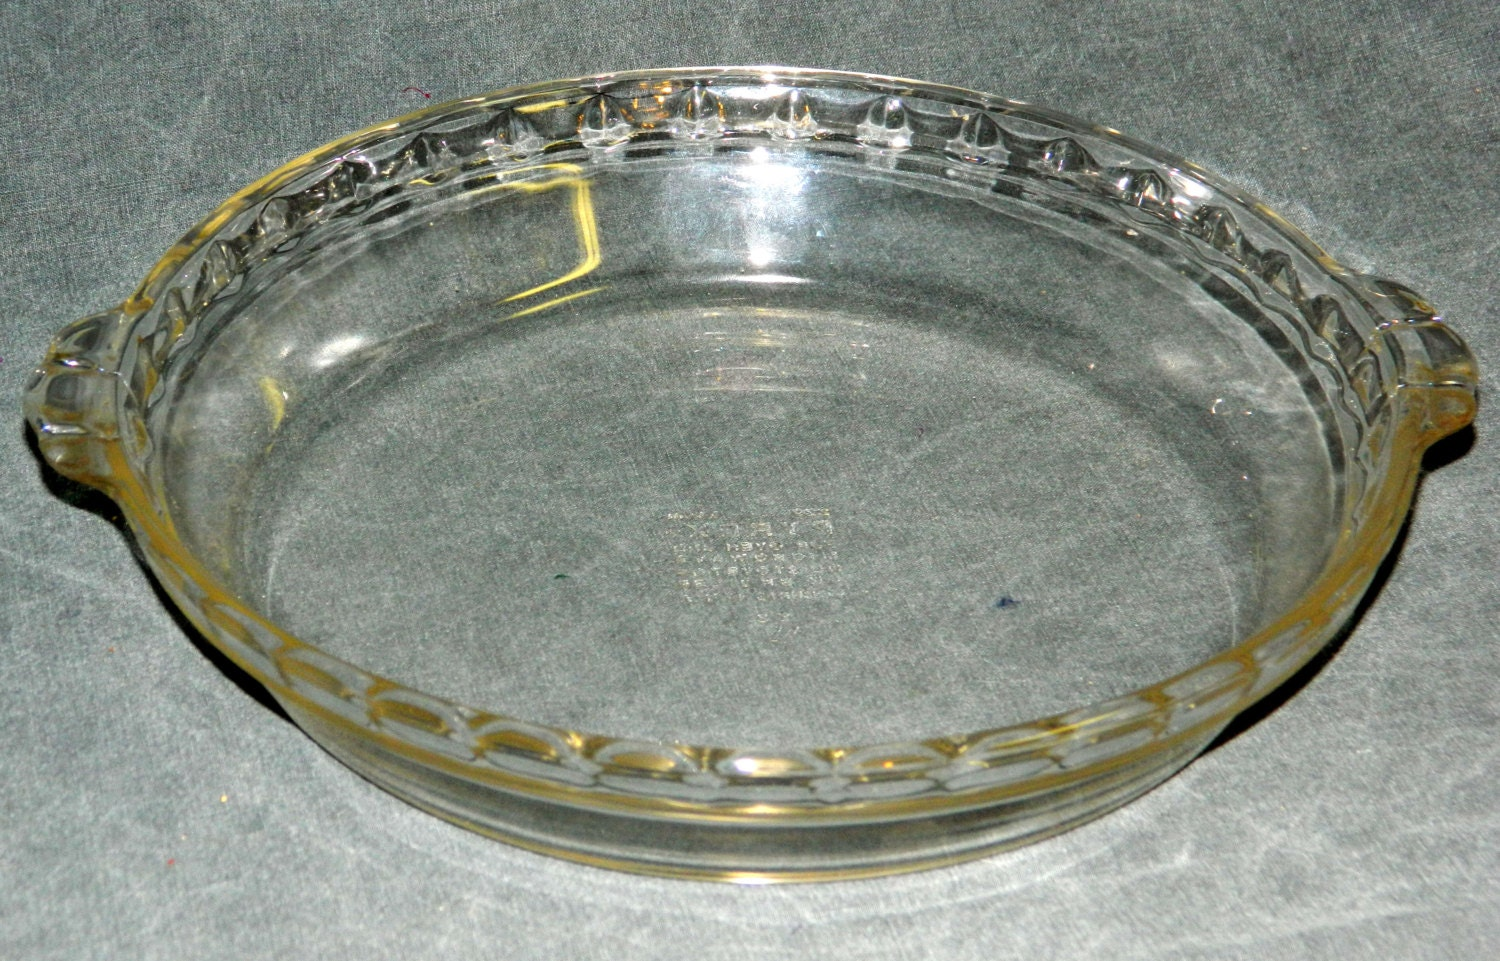 Pyrex Pie Plate Scalloped Fluted Edge Vintage Clear 9 5 Inch